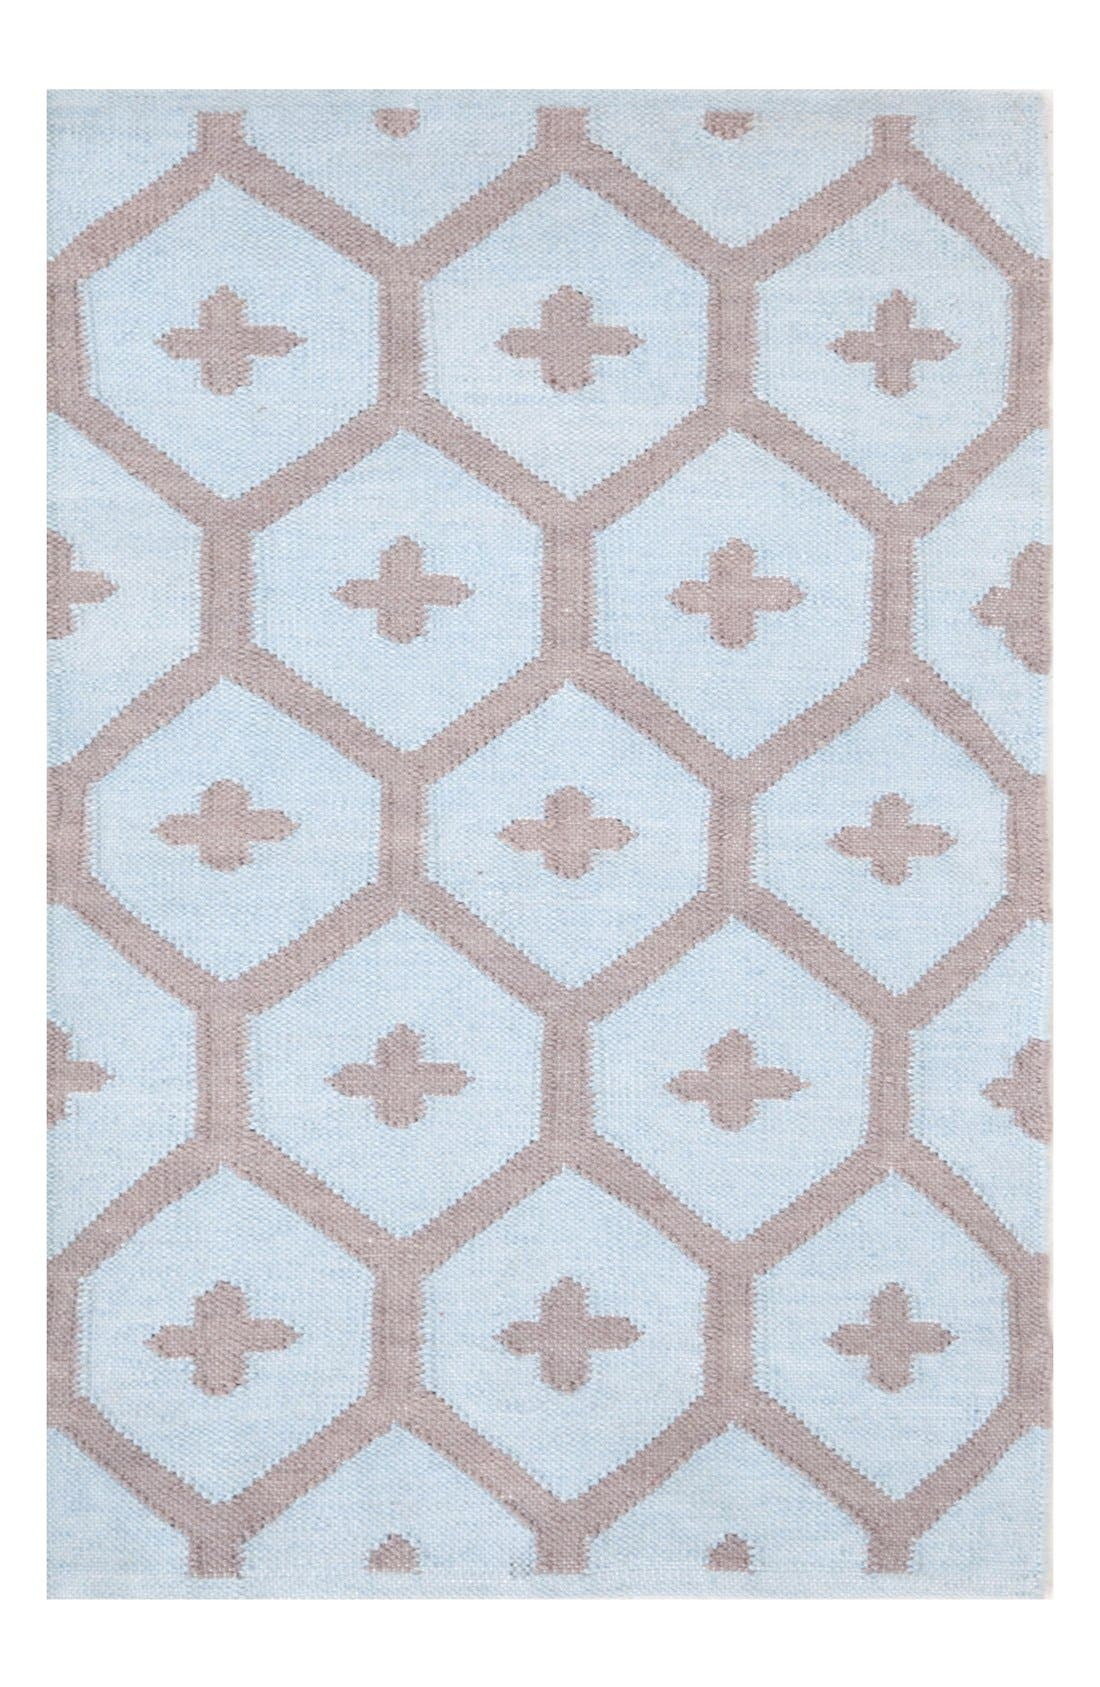 'Elizabeth' Indoor/Outdoor Rug,                         Main,                         color, 400